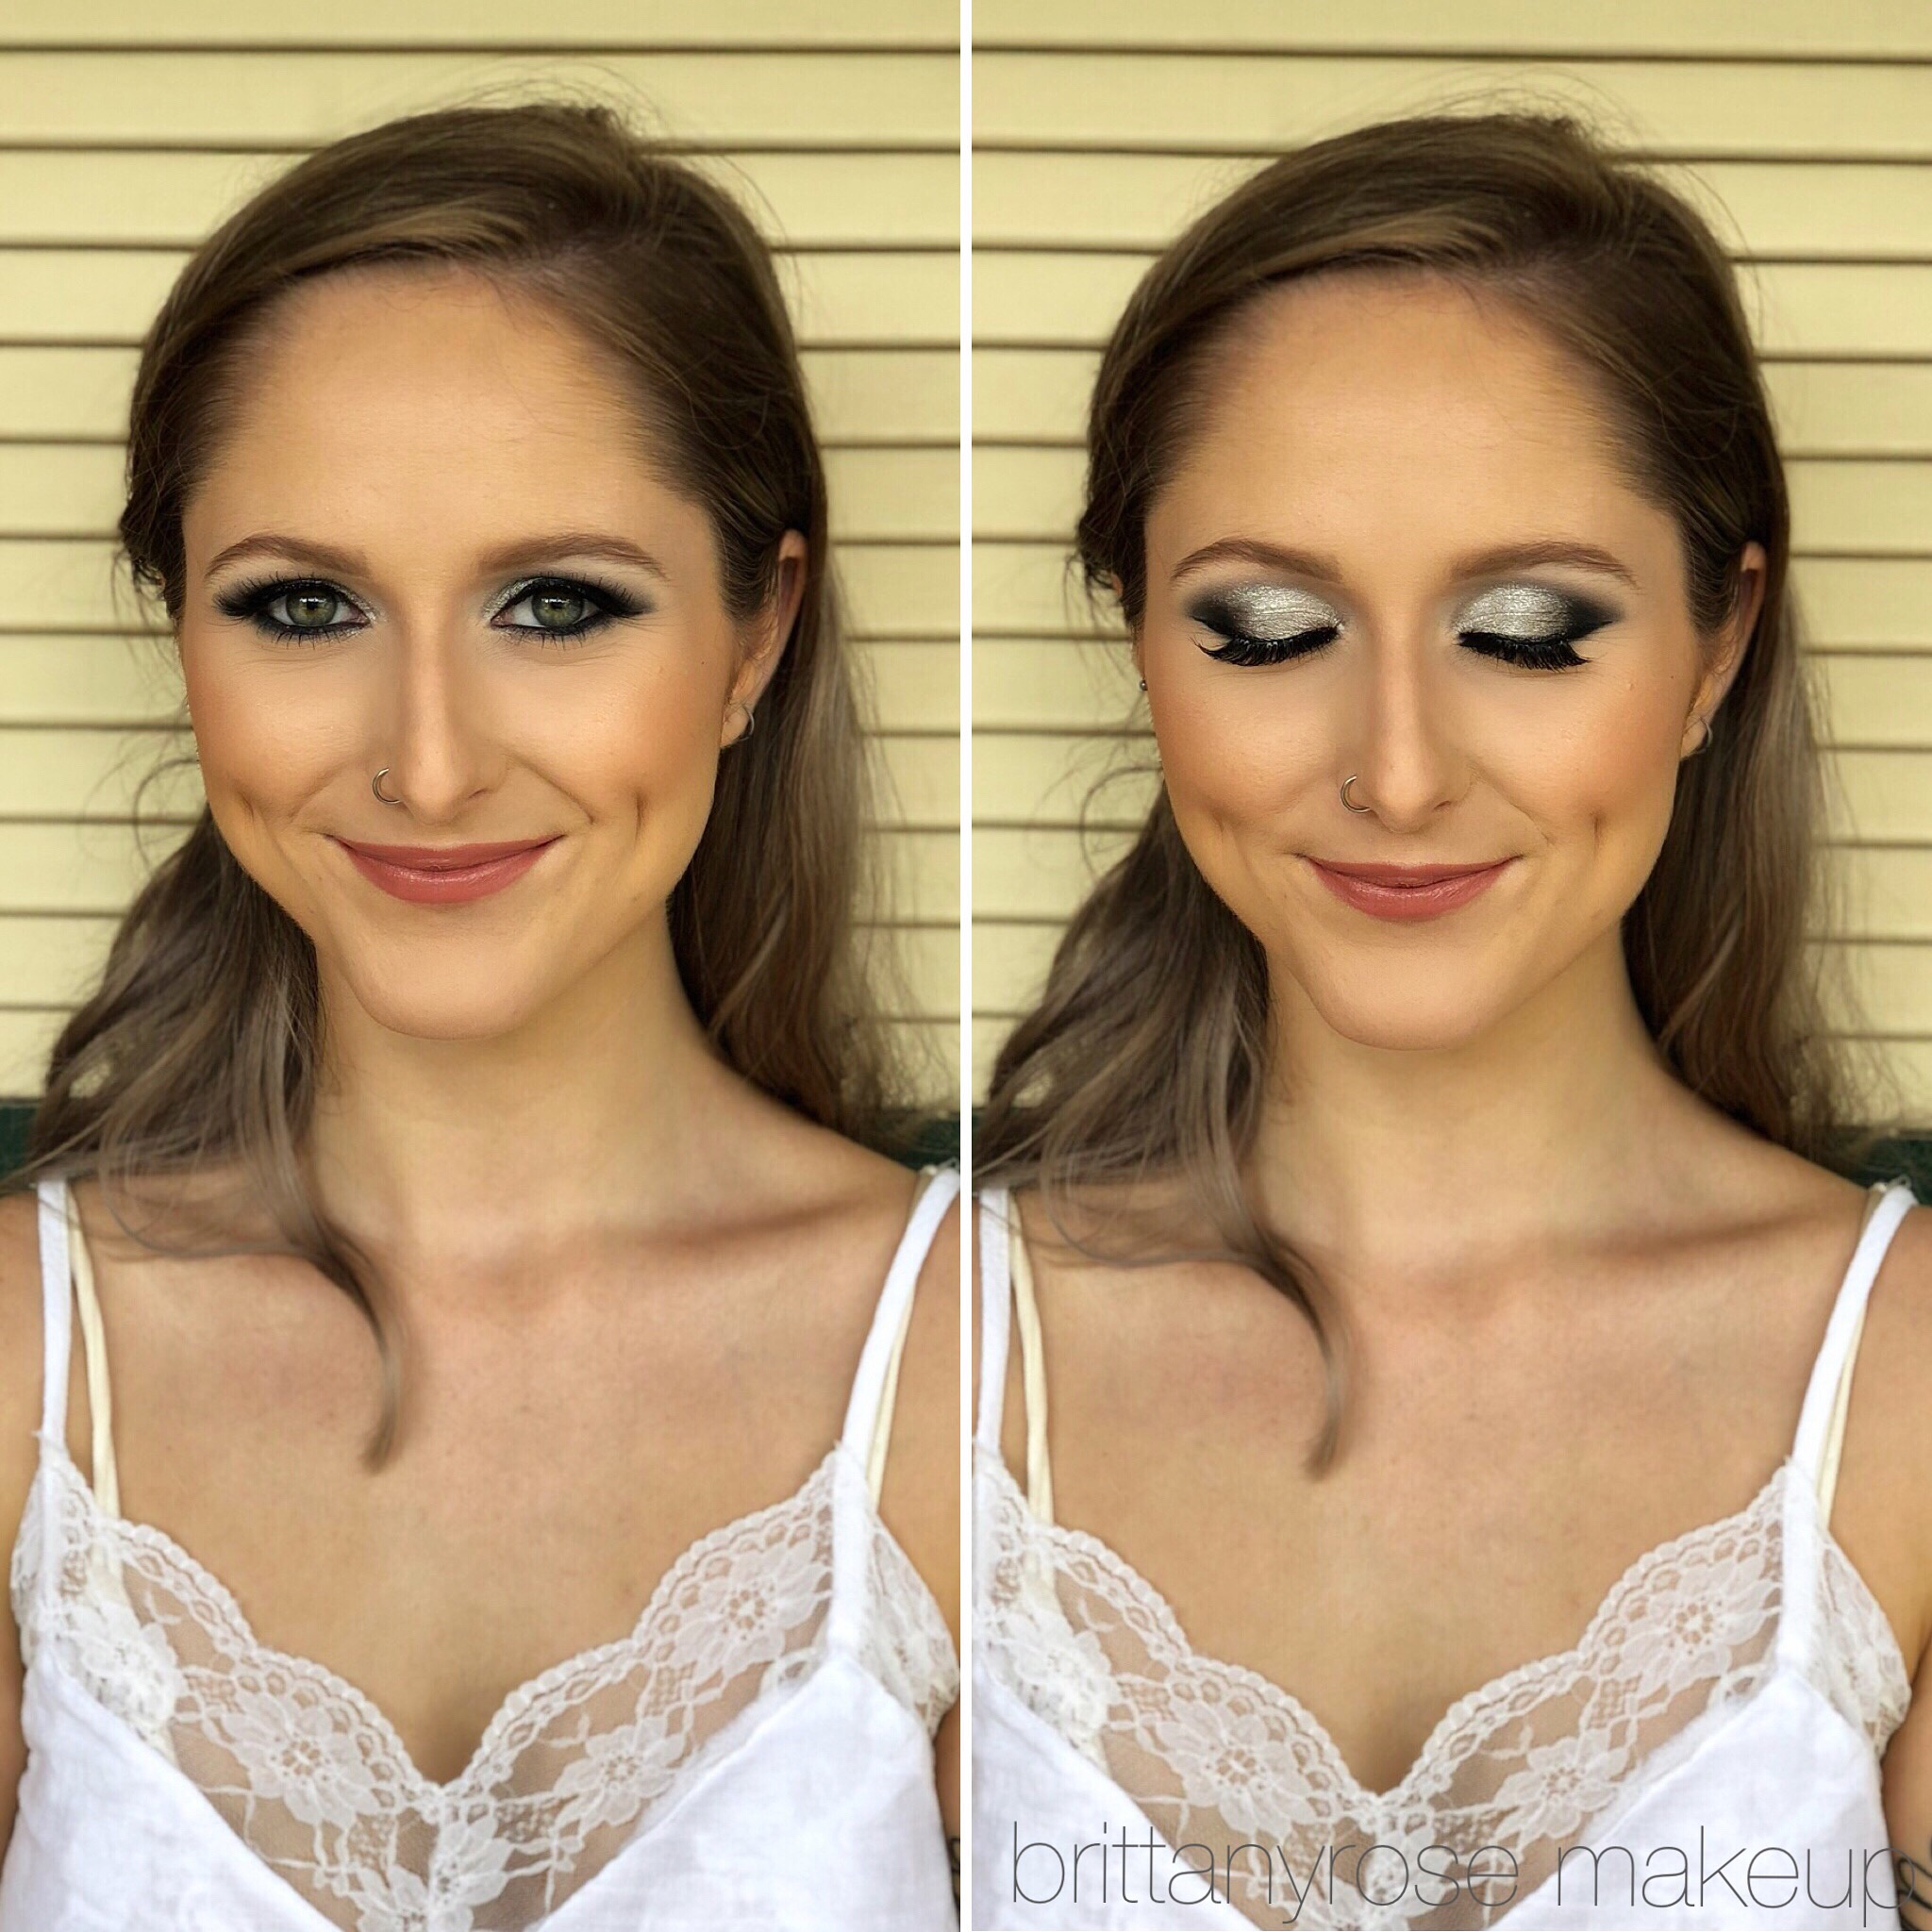 brittany rose makeup